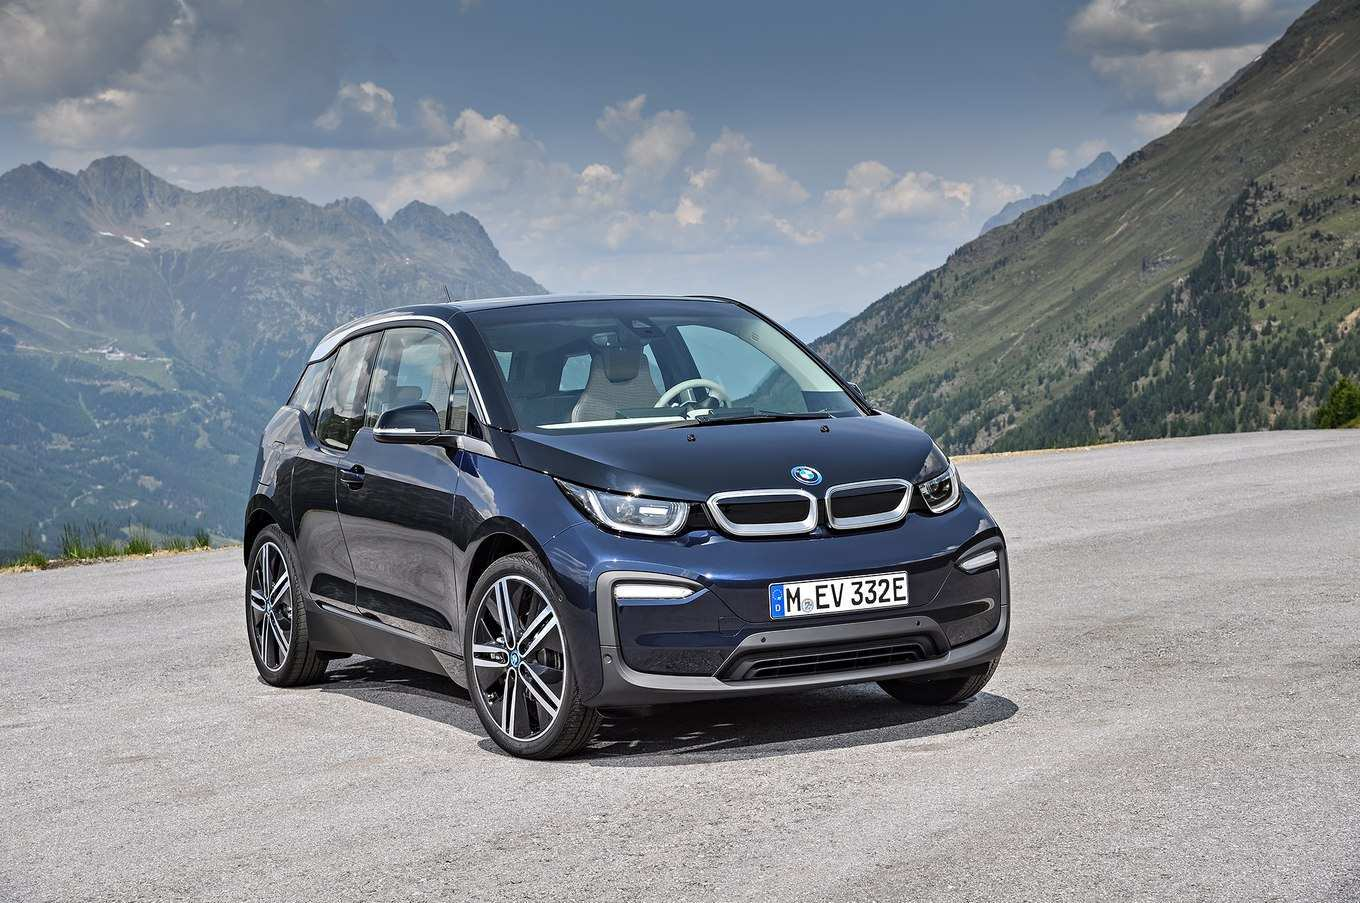 74 New 2020 Bmw I3 Wallpaper with 2020 Bmw I3